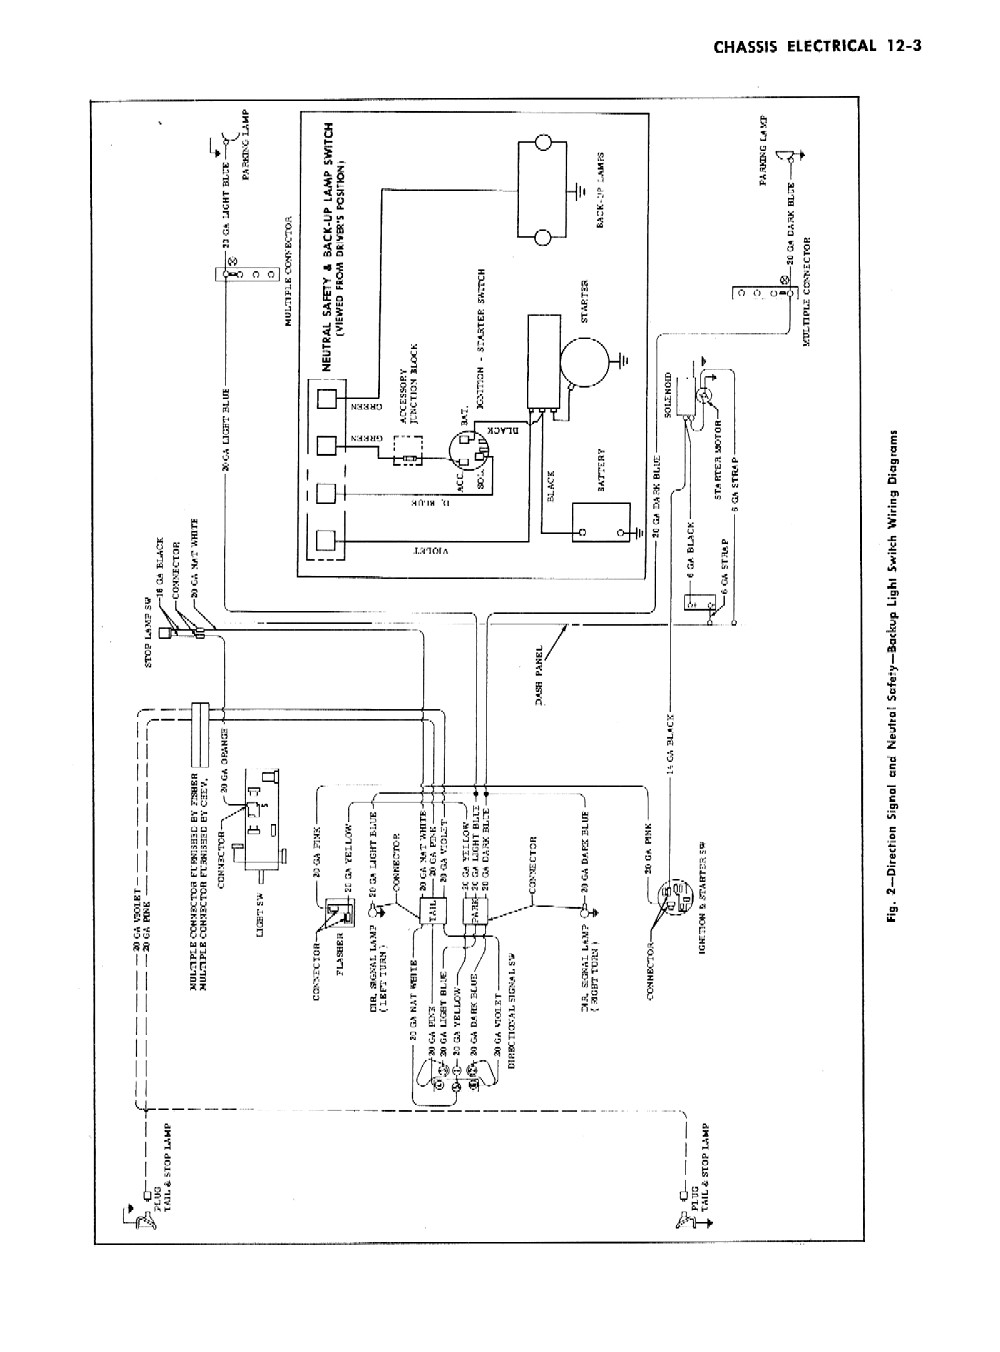 1955 Chevrolet Wiring Diagrams